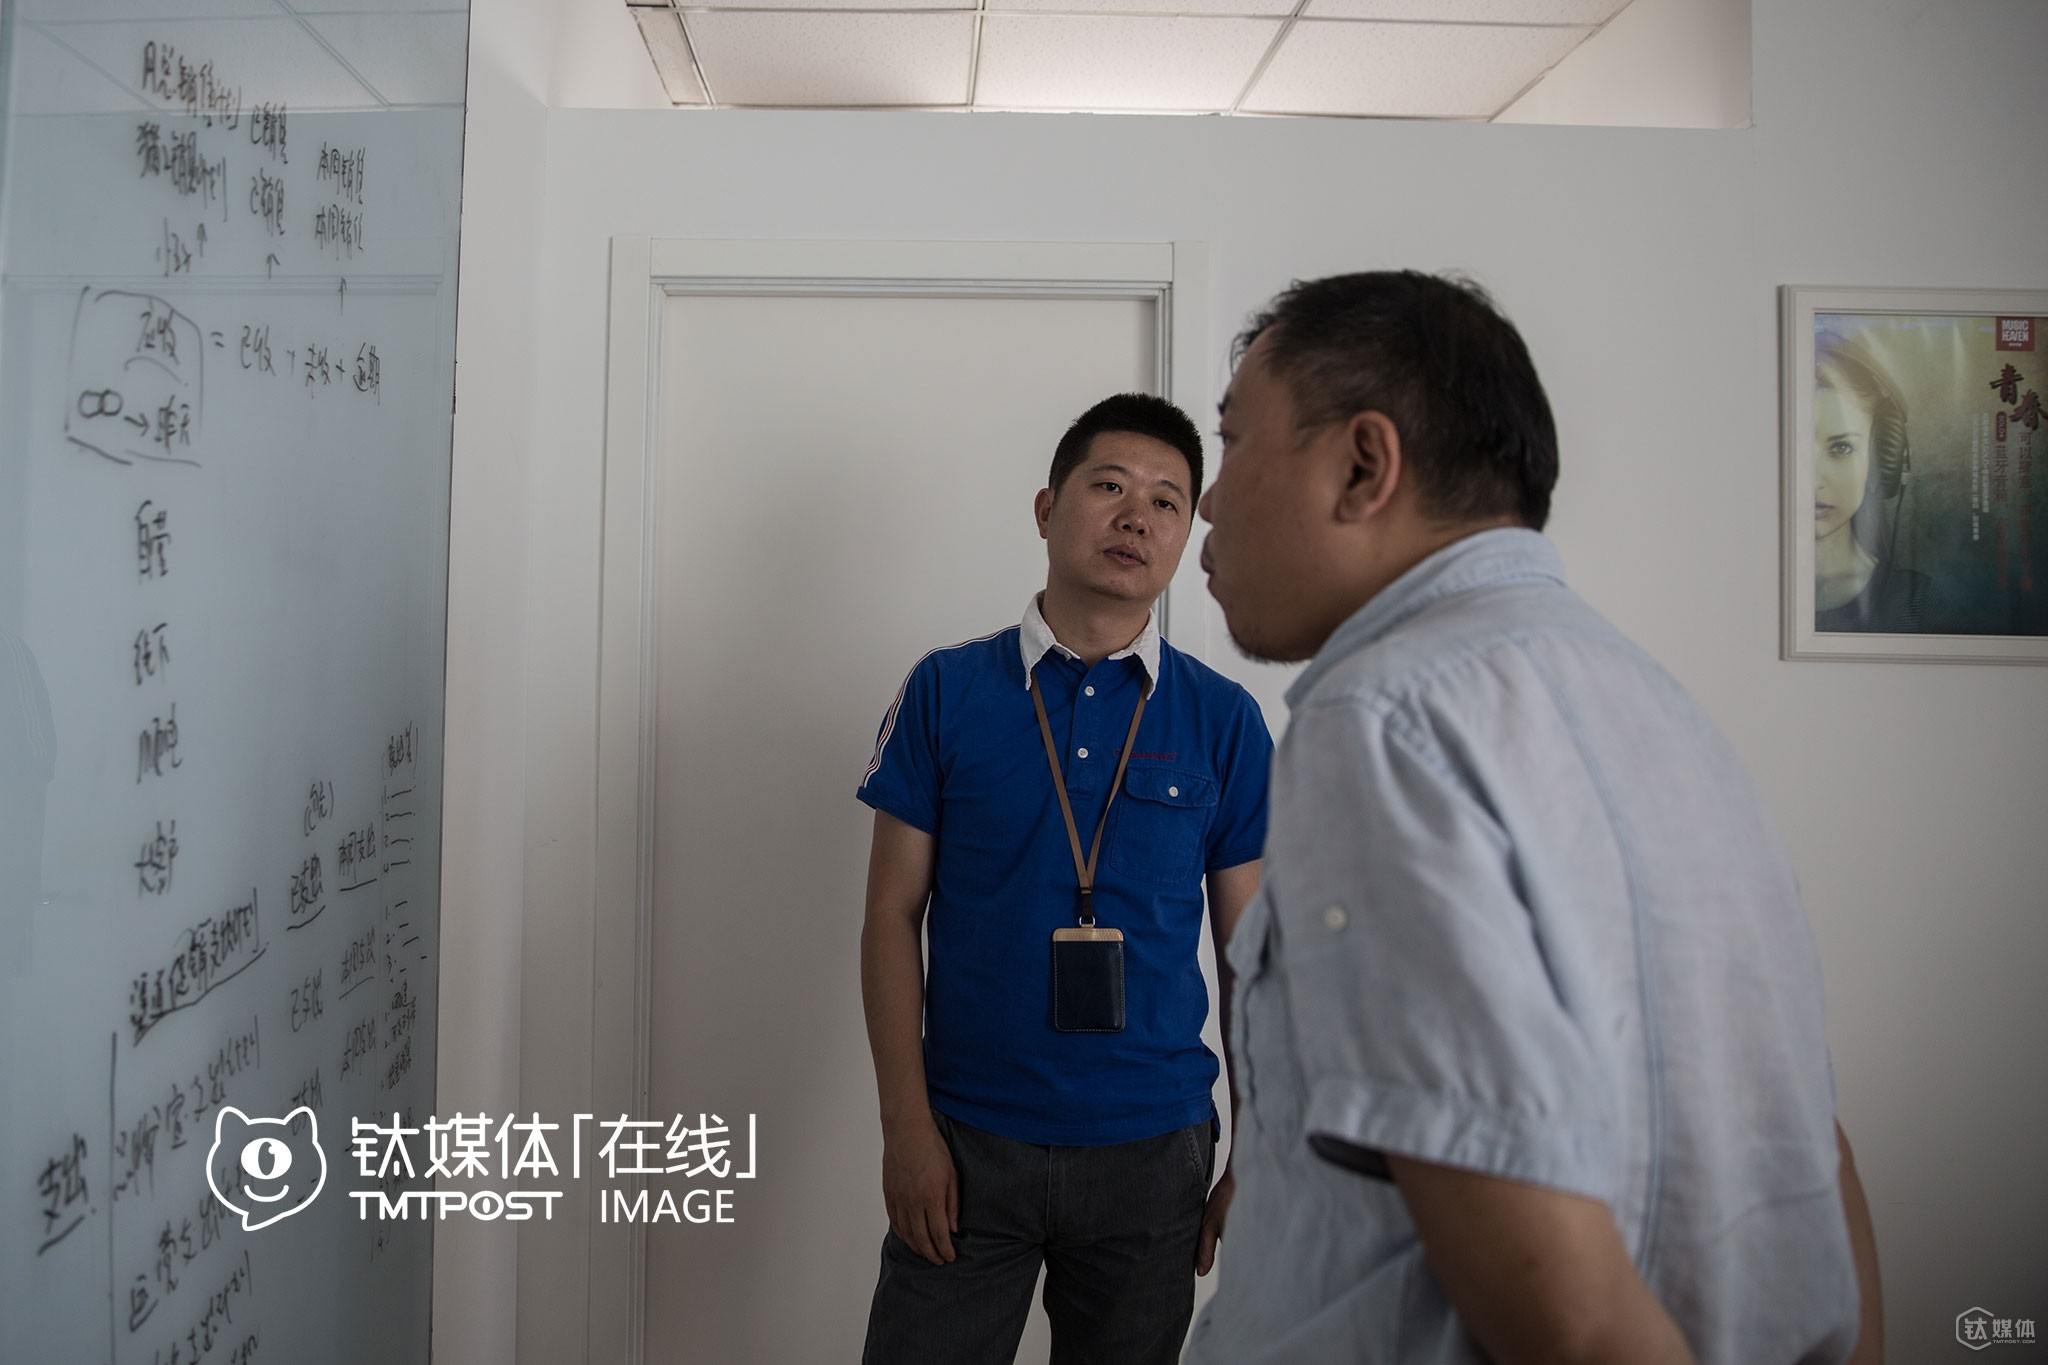 """It was July, 14th, Focus International Center. Dai Mingzhi (to the left of the picture), the co-founder of the smart radio maker AirSmart, was discussing with his colleague. The startup just moved from a smaller office at Focus International Center. """"Wangjing is pretty much self-sufficient. People and live ,work and get their kids educated entirely within Wangjing. Moreover, it's very convenient to go to CBD and Zhongguancun from Wangjing, and the traffic inside Wangjing is not at all heavy. The only problem that it could be really hard to enter or leave Wangjing, due to the heavy traffic at the entry of Wangjing. If you want to start your own company in Wangjing, you'd better move your family to Wangjing to save time,"""" he explained."""